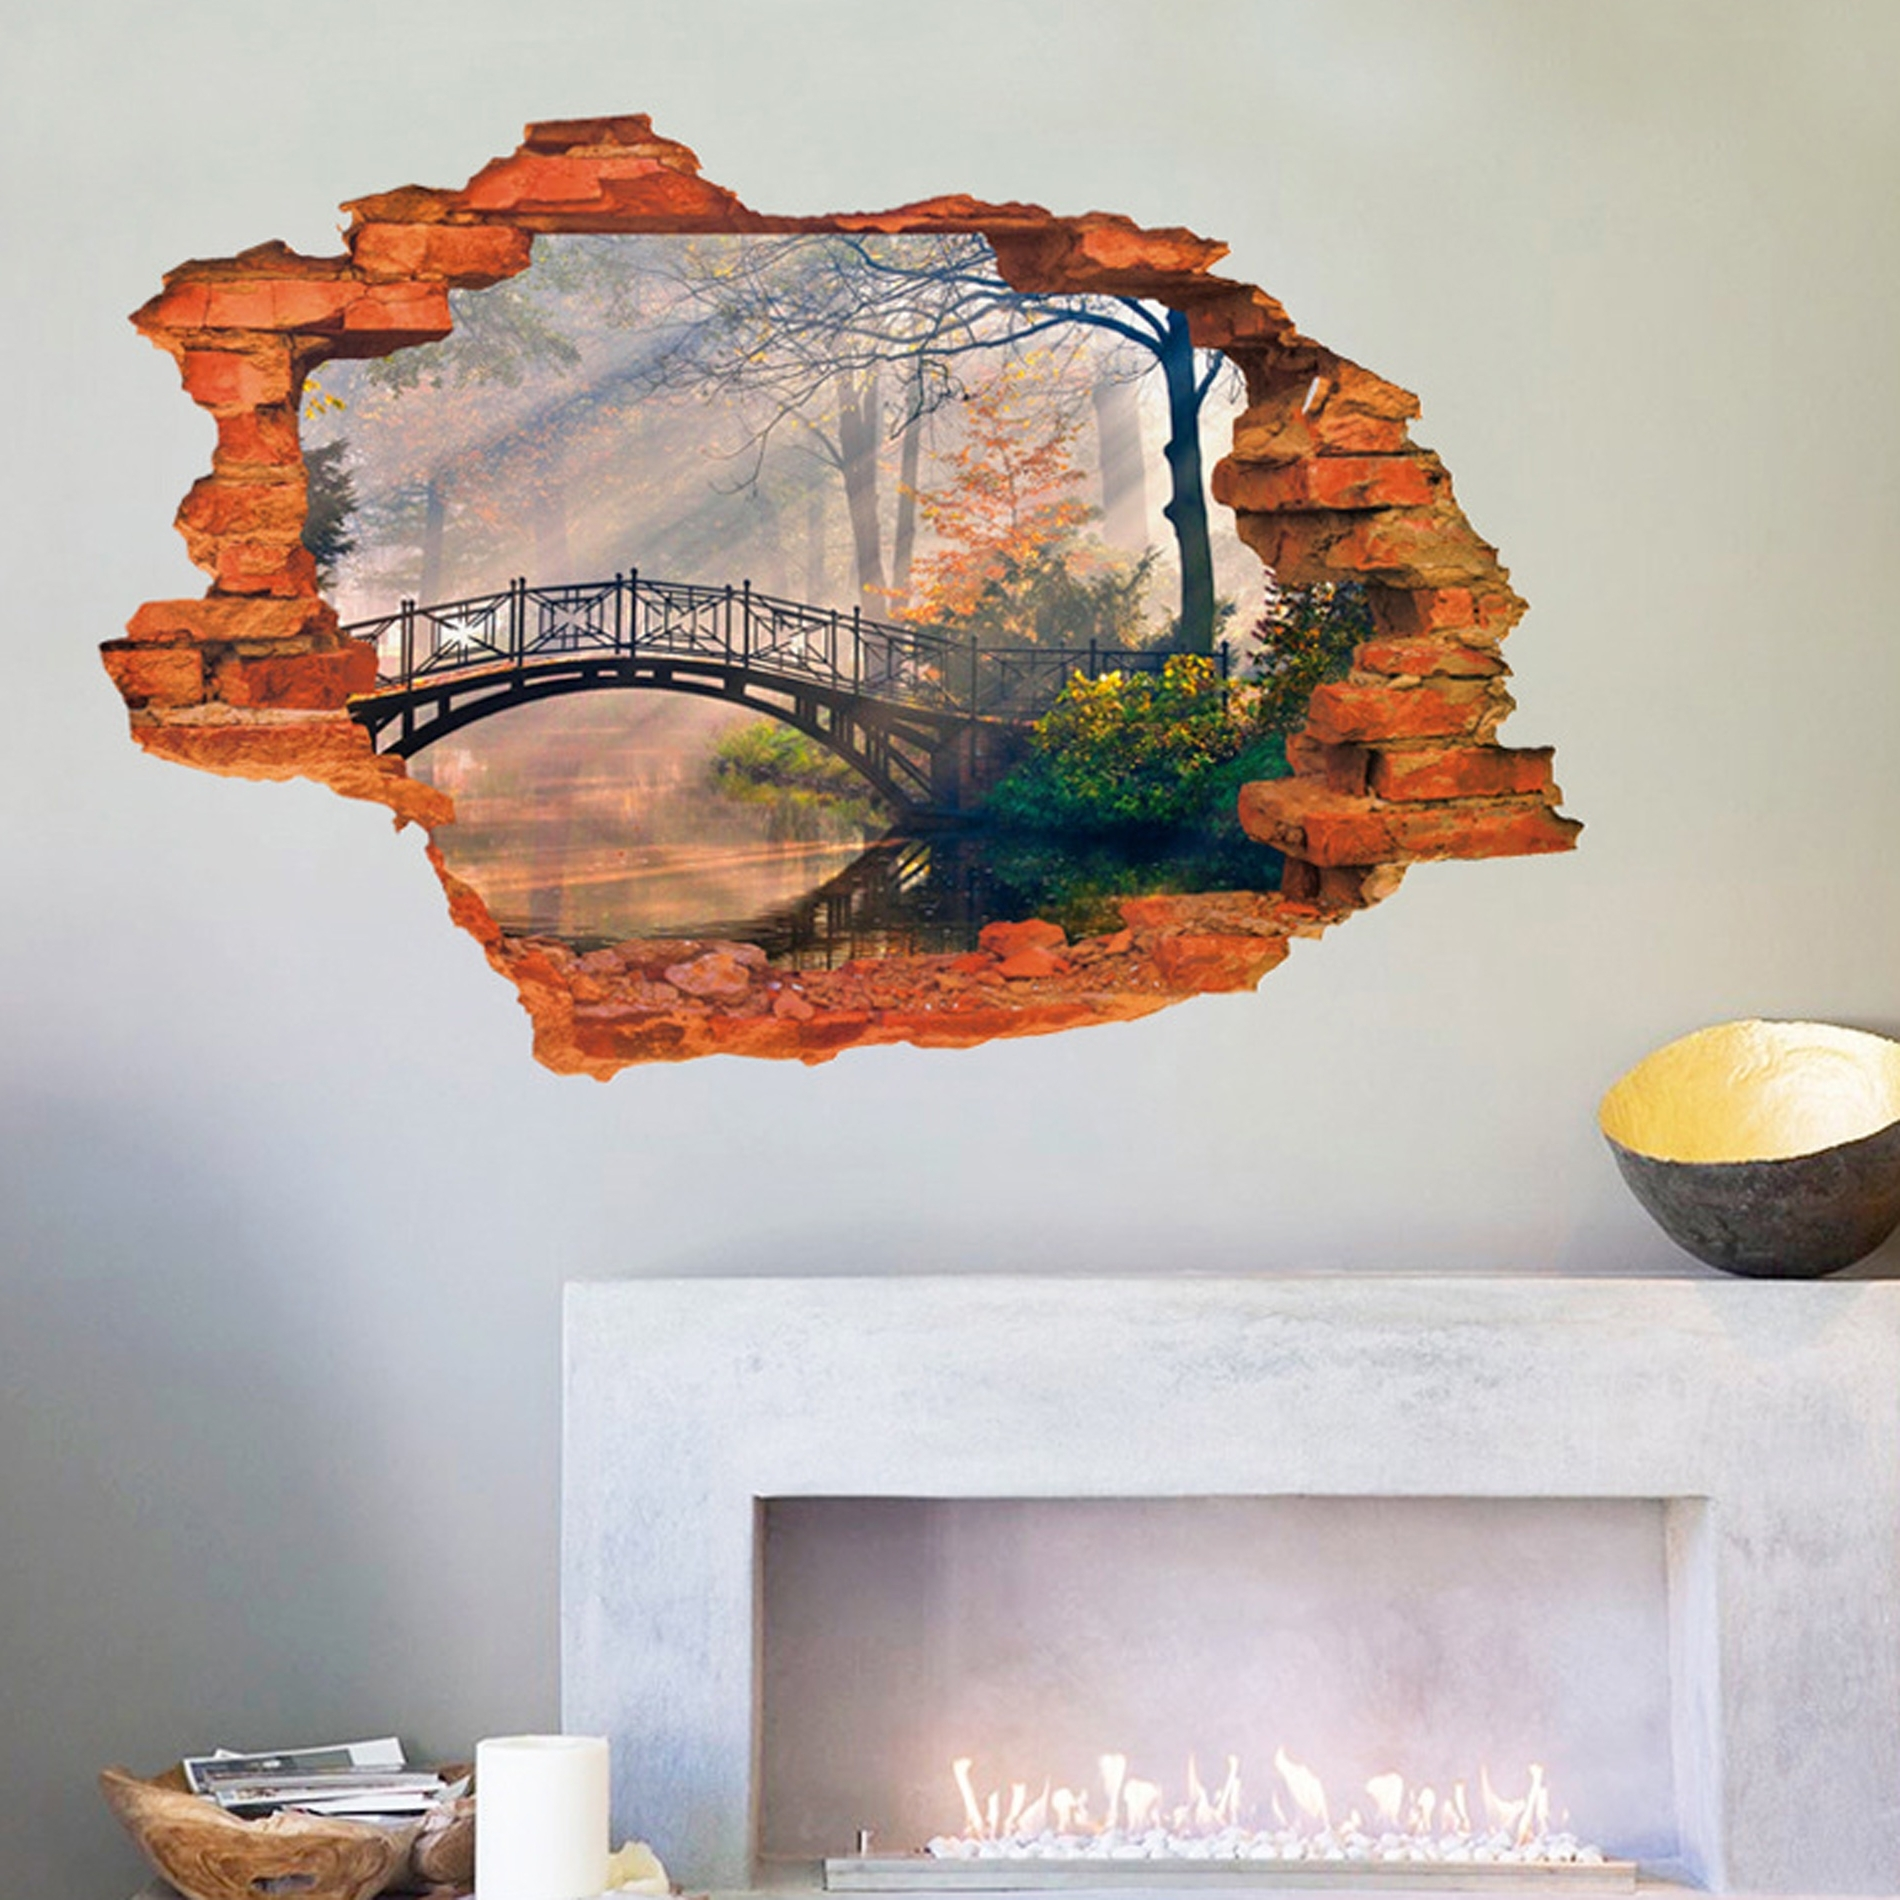 Vinyl 3D Wall Art Within Well Known Removable 3D Broken Wall Stickers Art Vinyl Mural Home Decor + Key (Gallery 4 of 15)